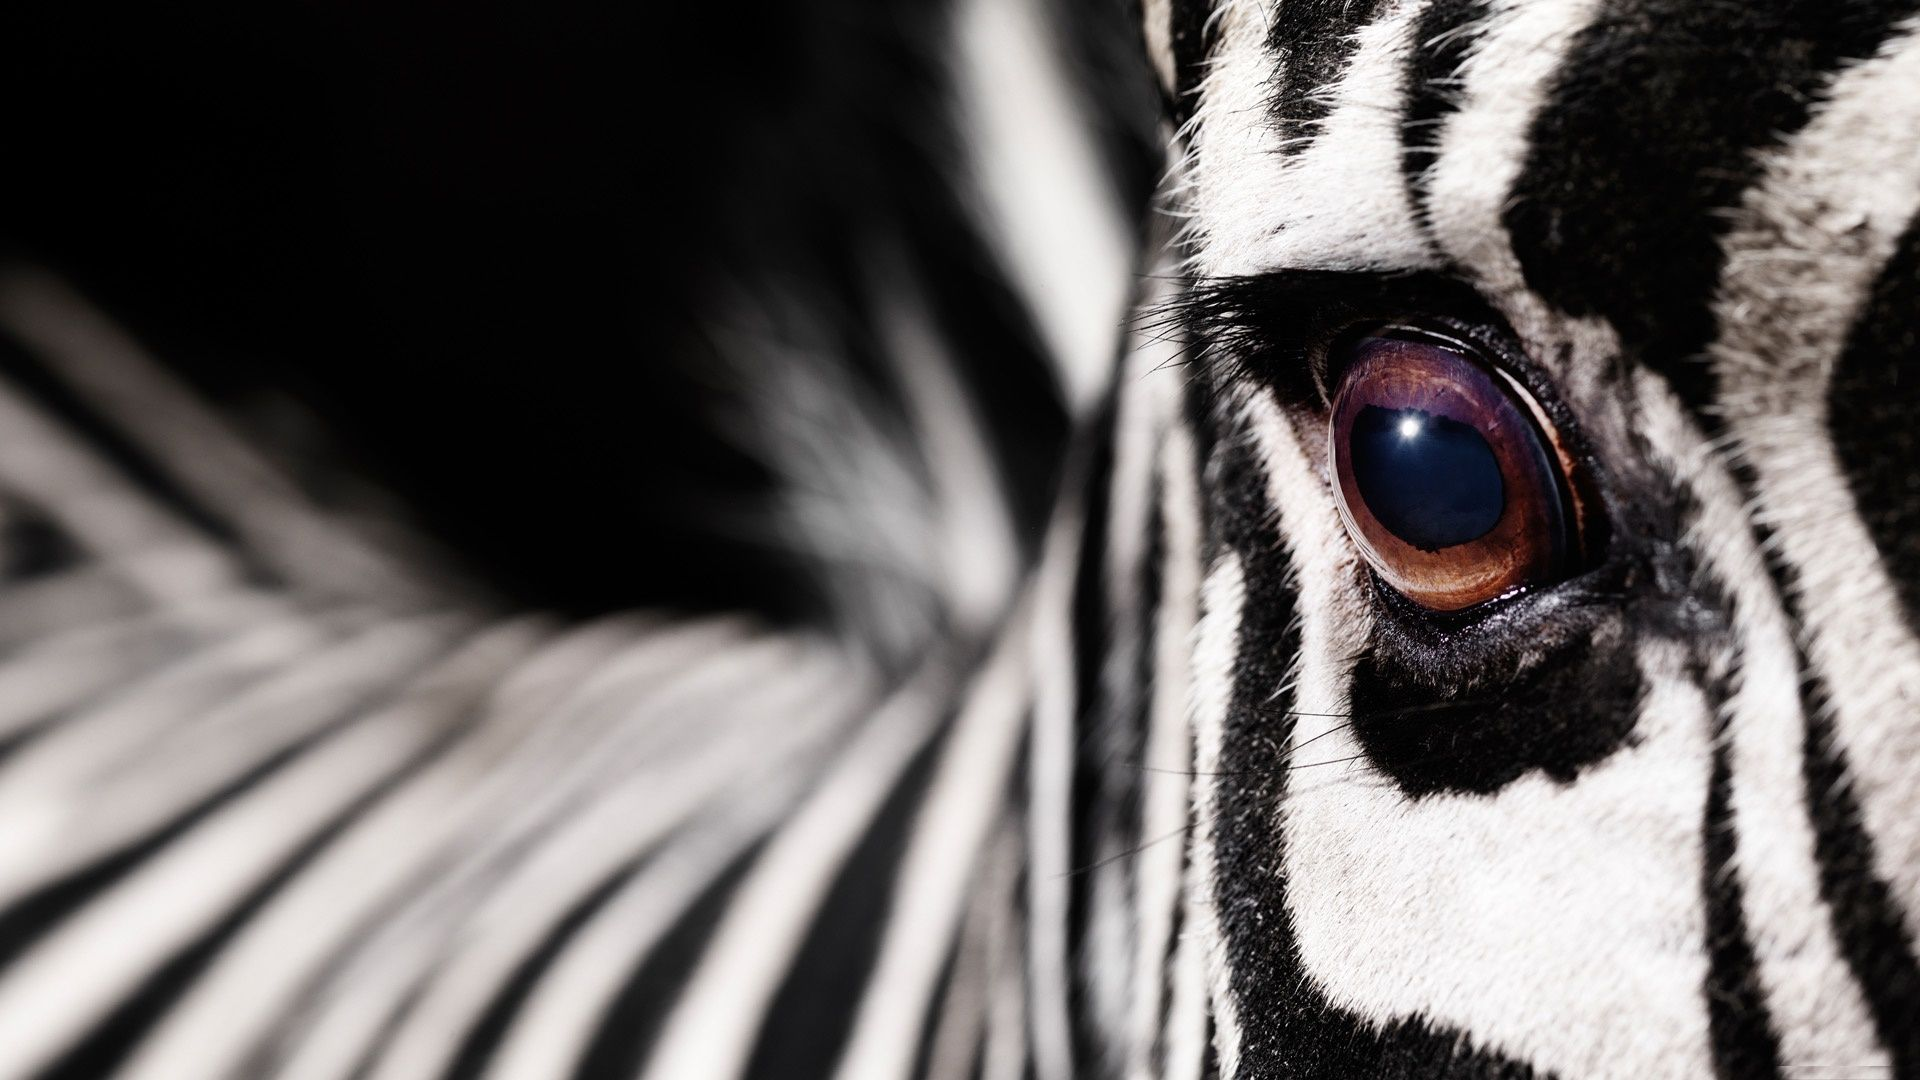 download zebra wallpaper app gallery 1920a—1200 zebra images wallpapers 45 wallpapers